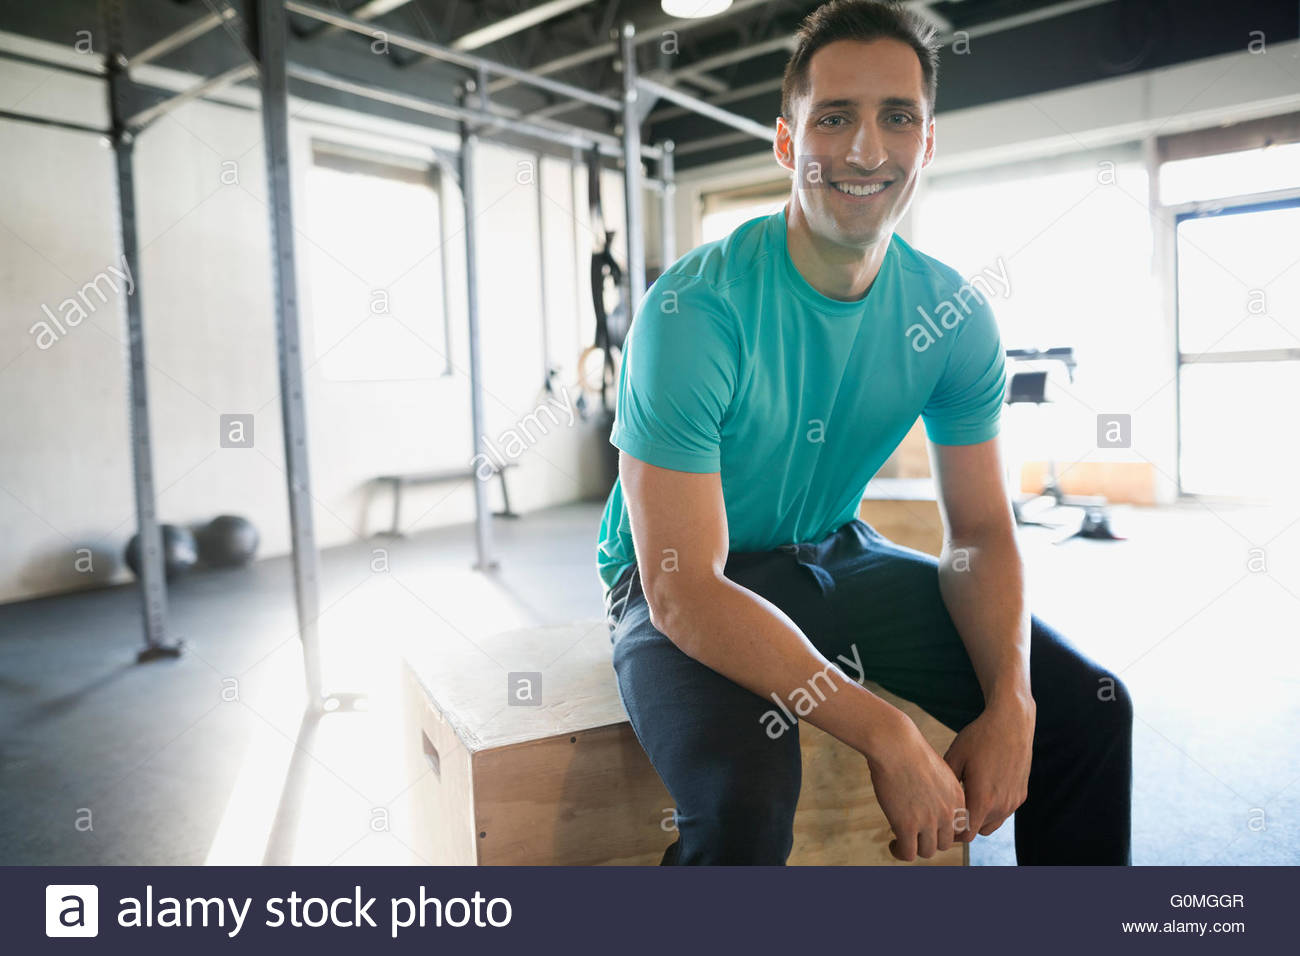 Portrait smiling man resting at gym - Stock Image